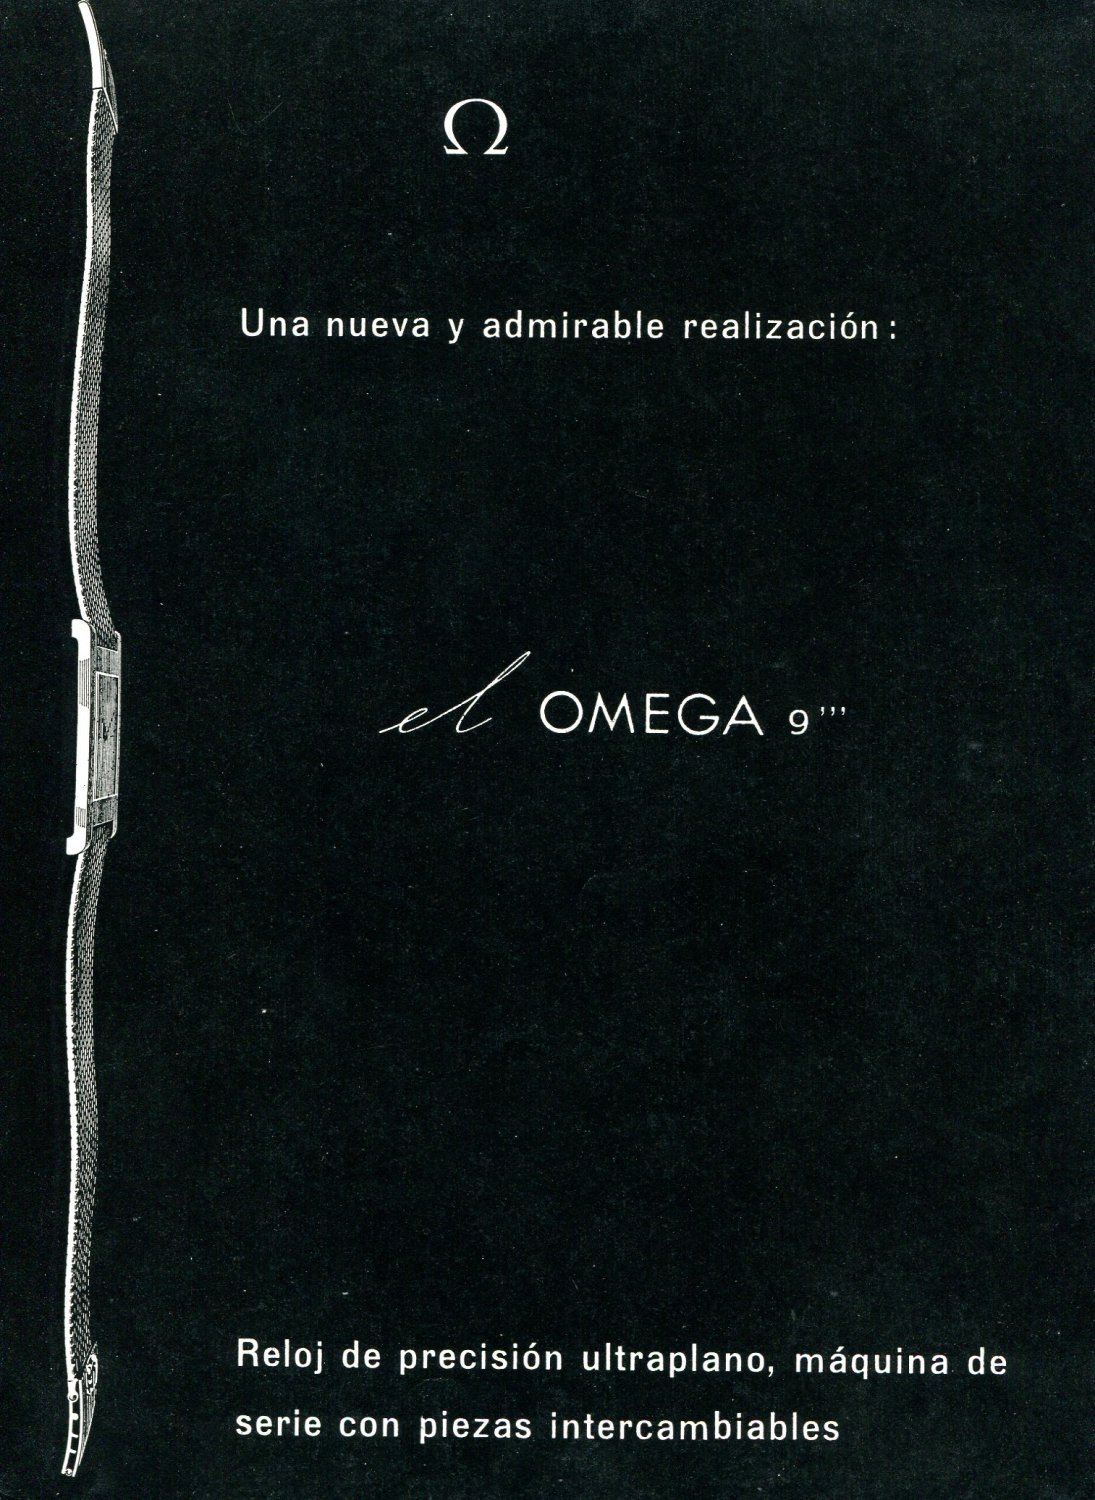 "1958 Omega CH 9'"" Watch Advert Omega Watch Company Switzerland 1950s Print Ad Spain Spanish"